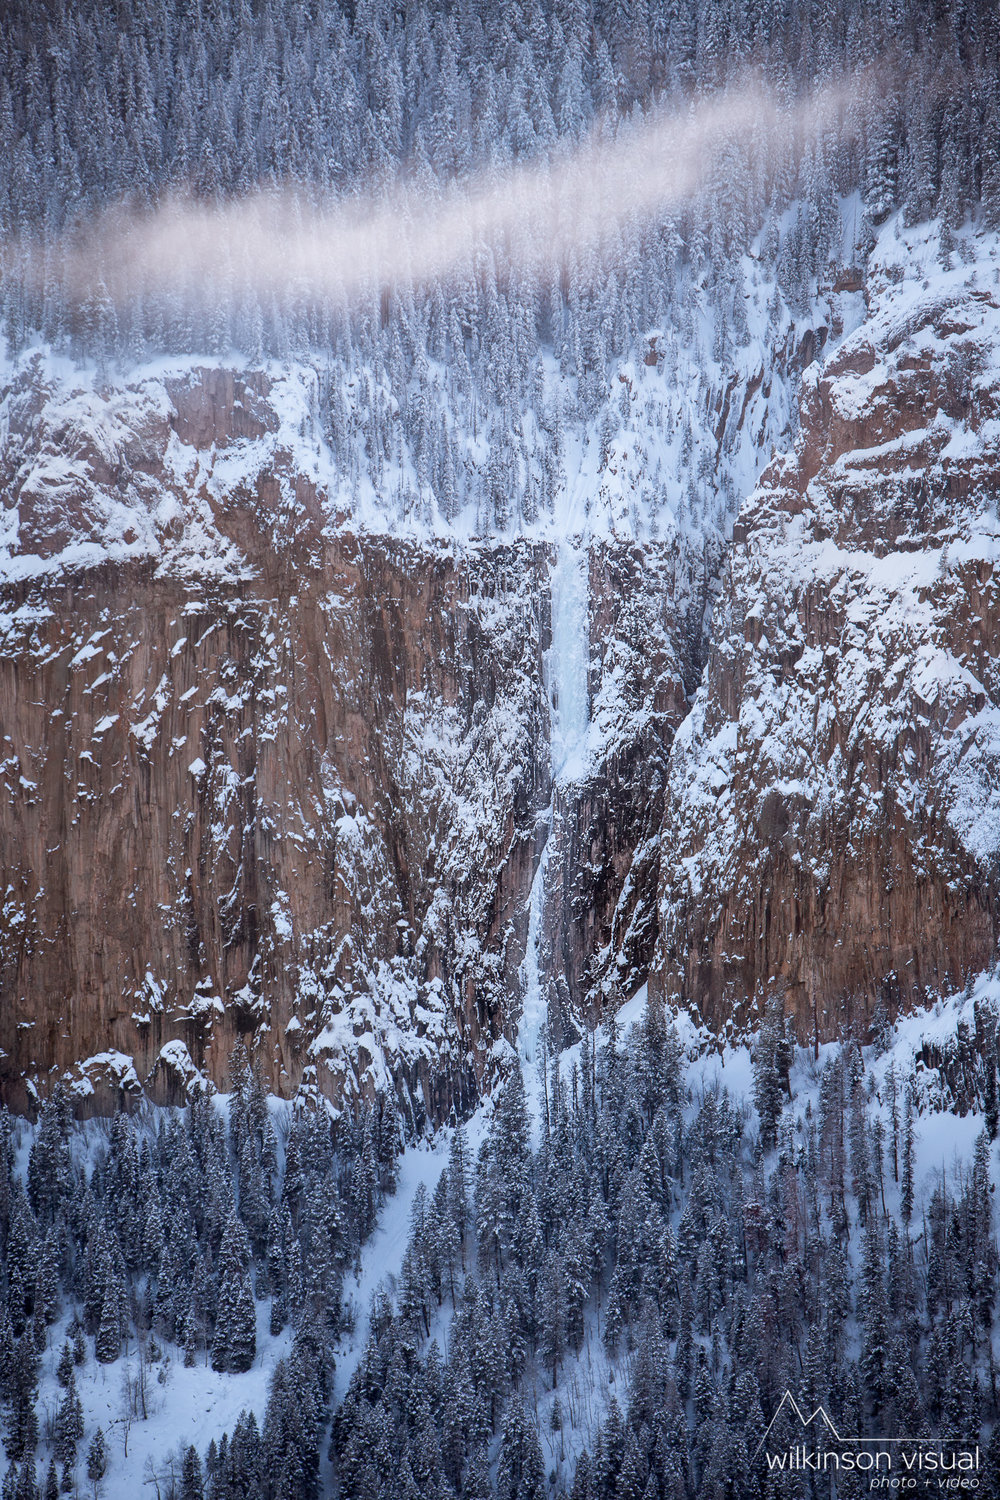 The Ames Wall in winter, with Ames Ice Hose in good condition. San Juan National Forest, Colorado.